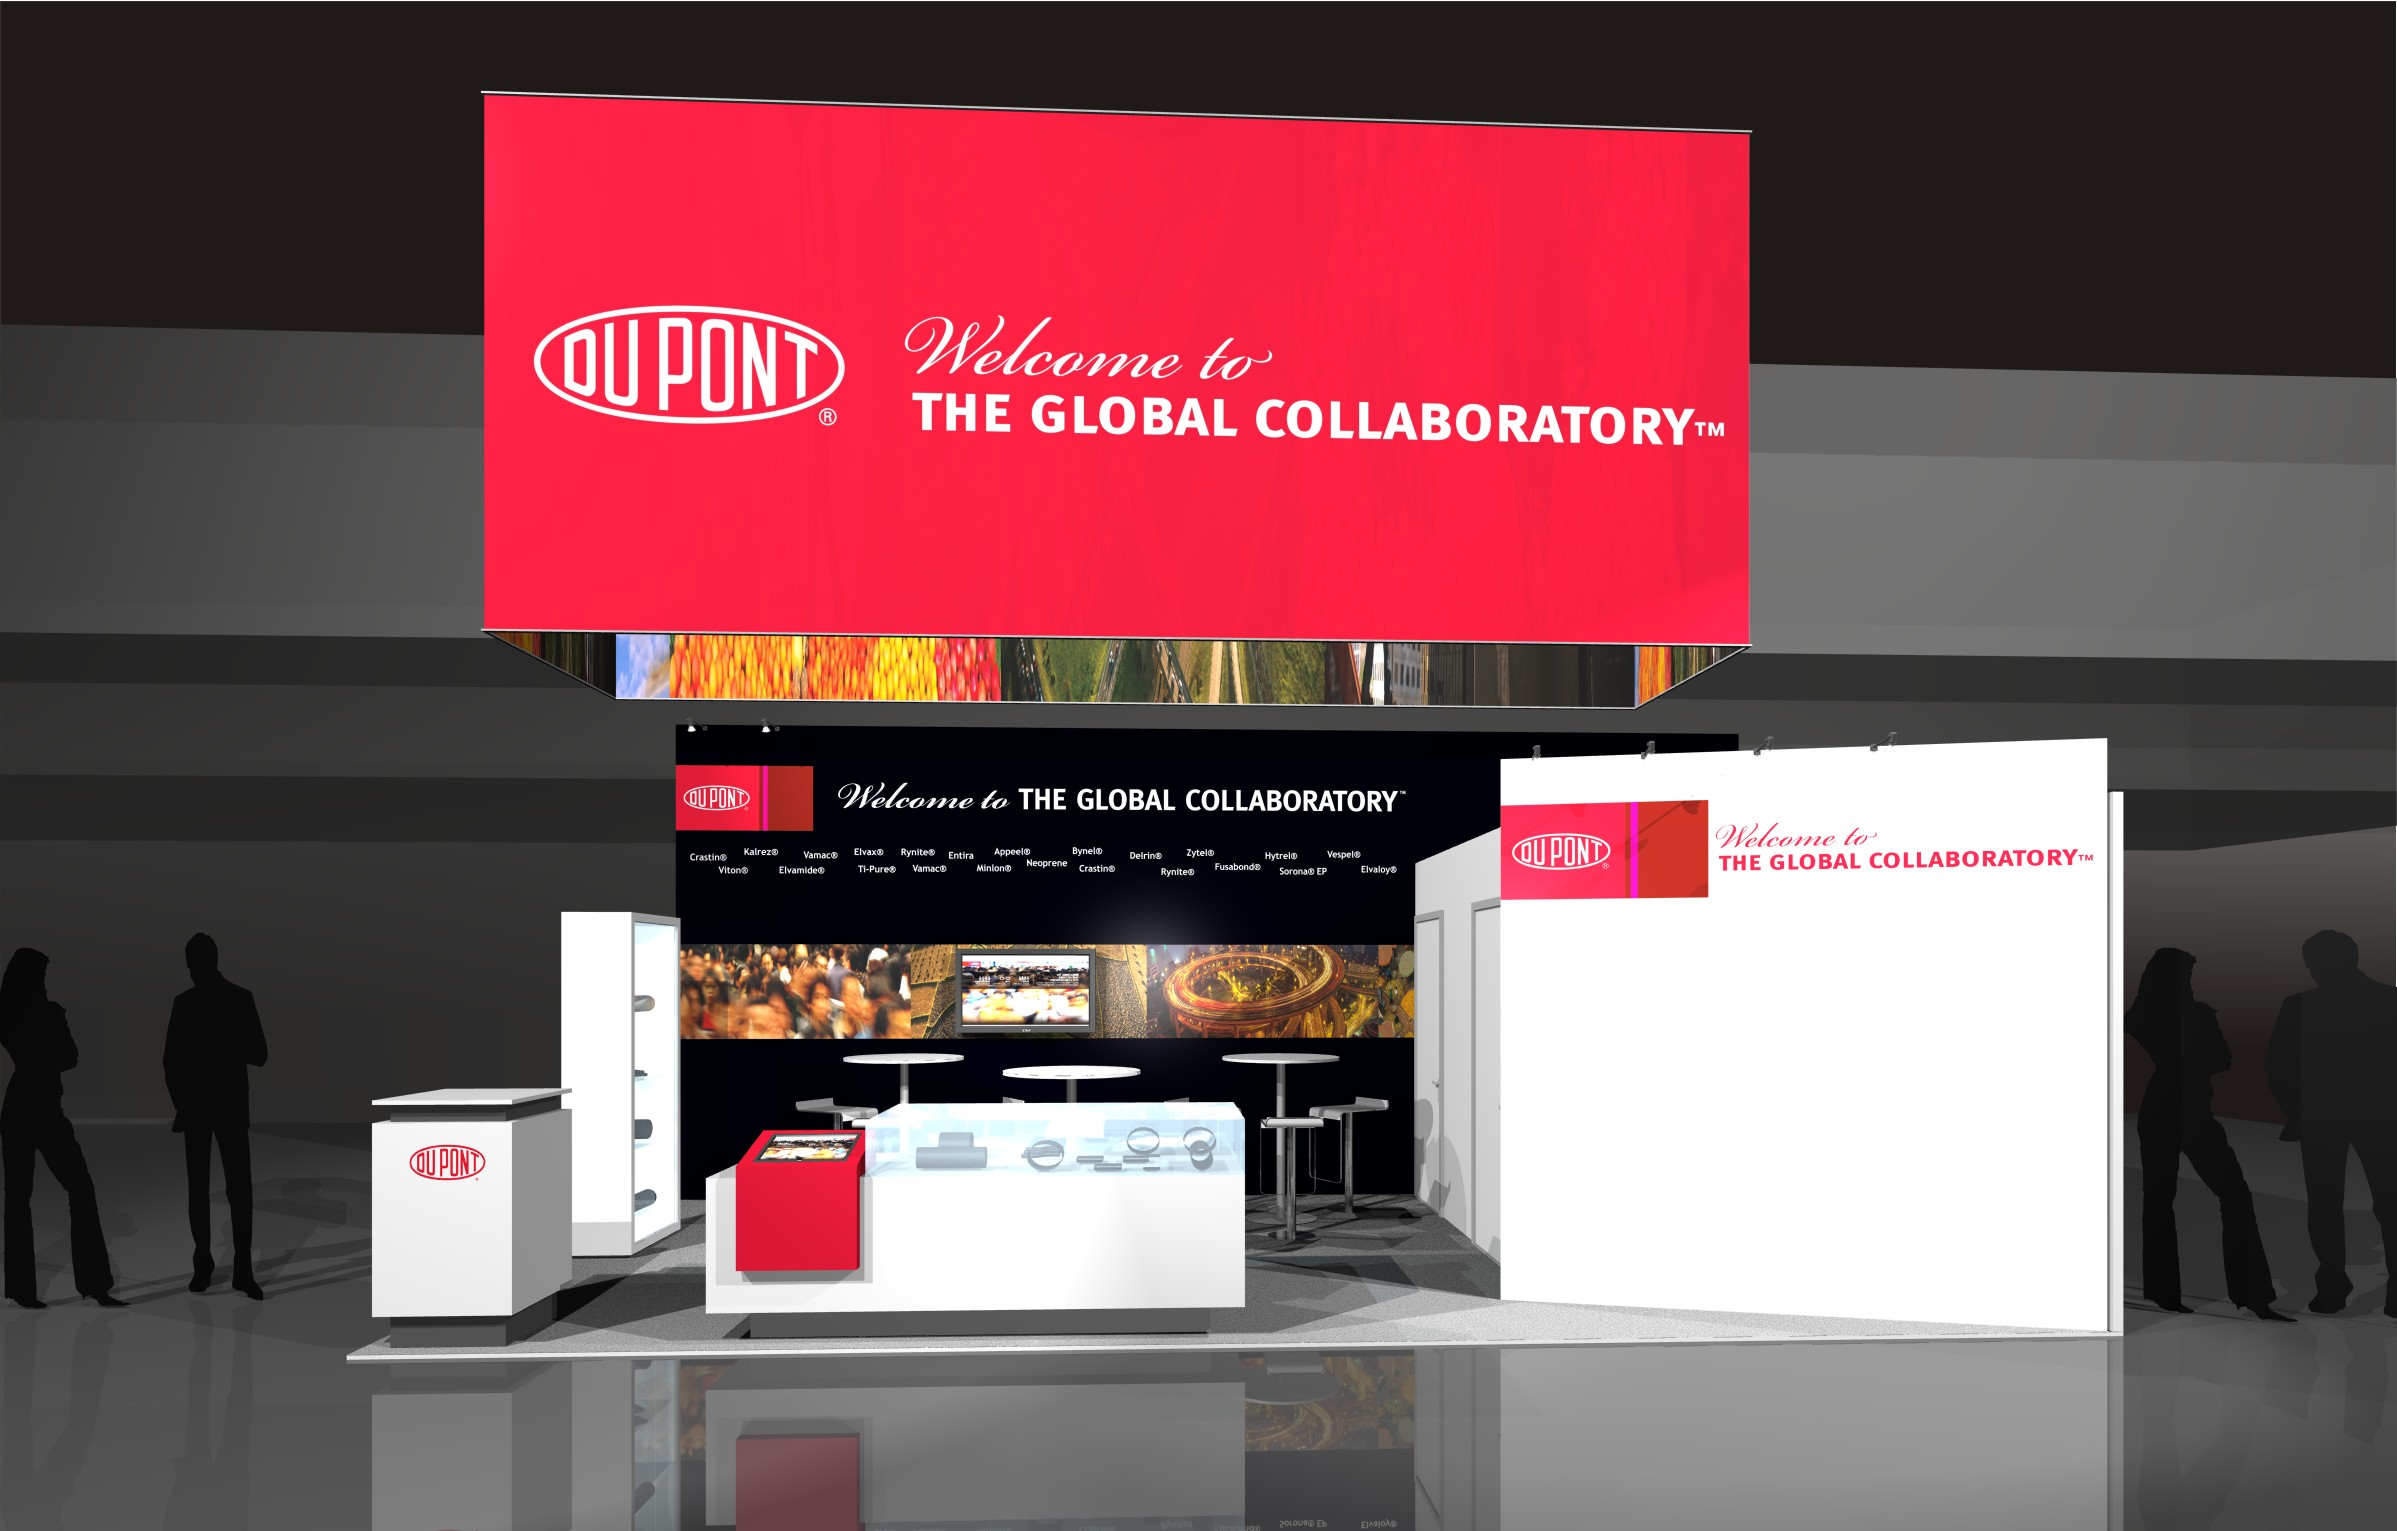 DuPont at Interplastica: Welcome to the Global Collaboratory